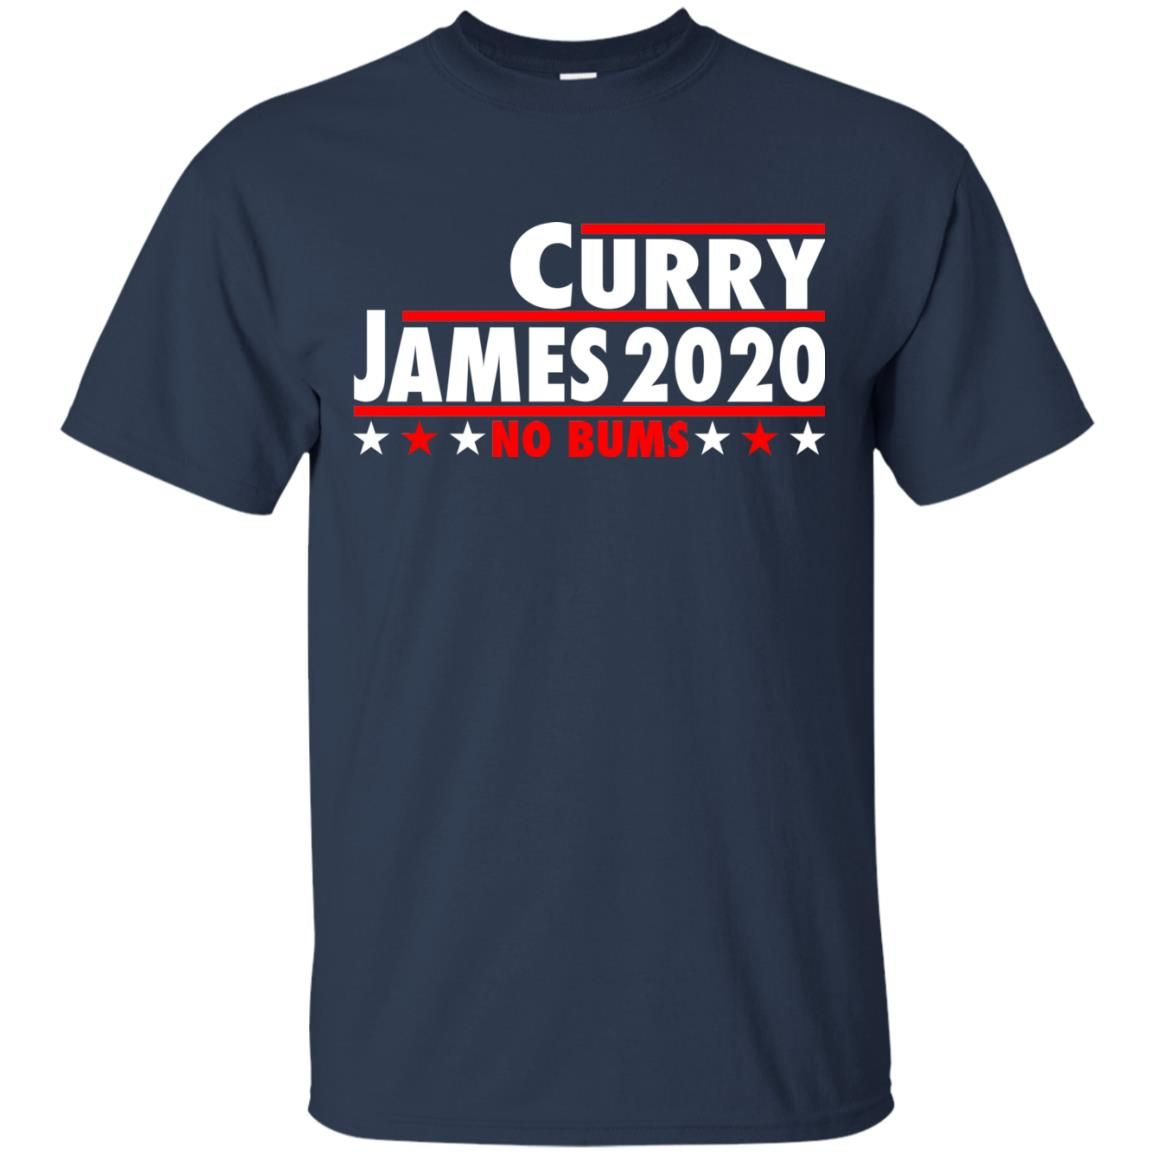 image 2022 - Curry Jame 2020 for President shirt